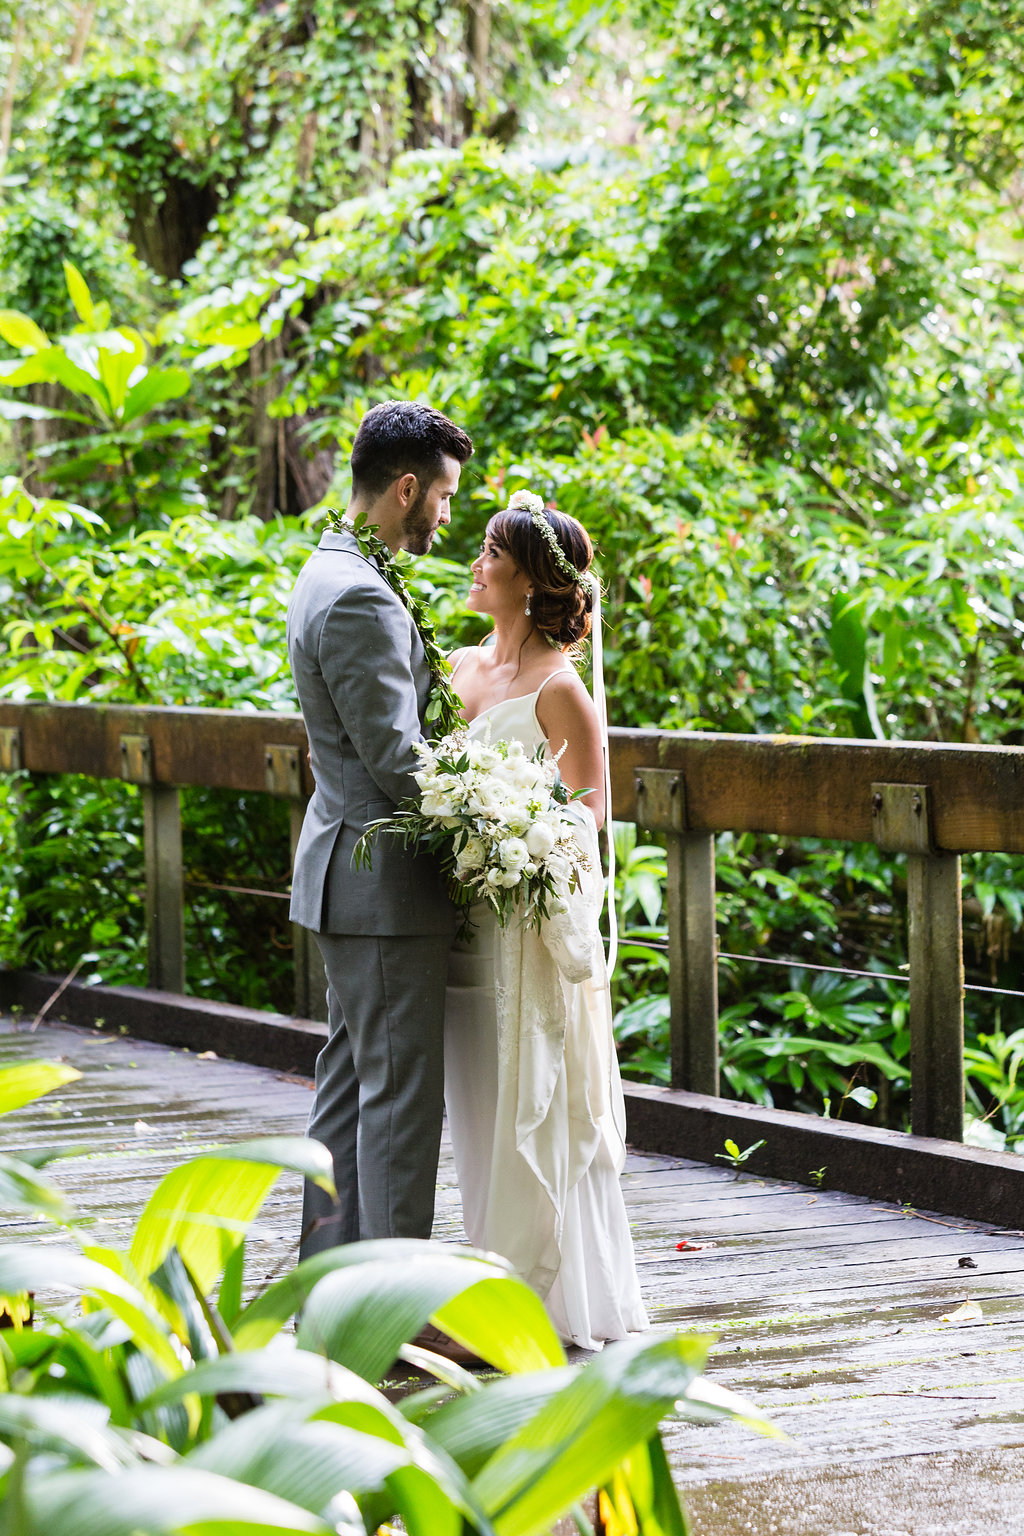 Gorgeous Wedding Photos - Hawaii Wedding Venue - The Overwhelmed Bride Wedding Blog